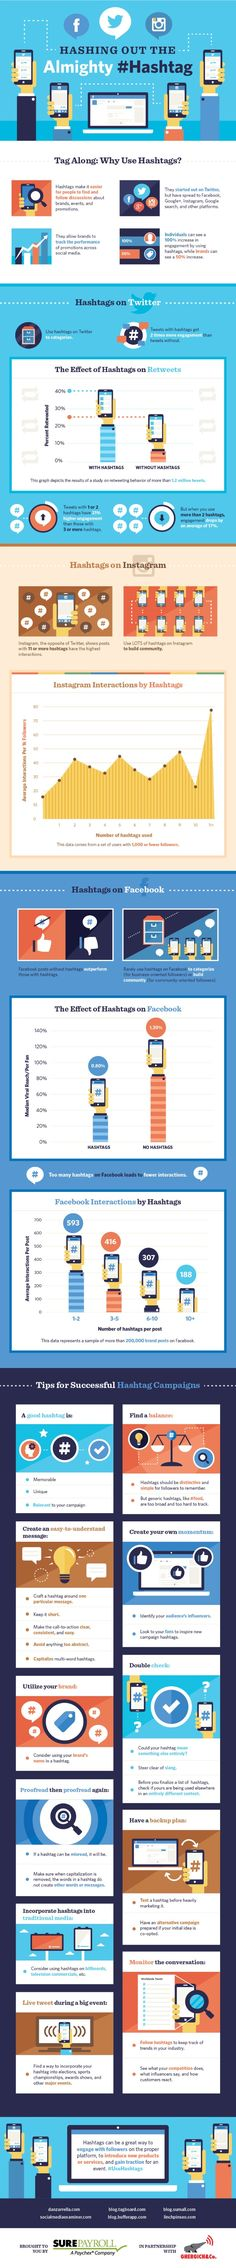 Hashing Out Hashtags: What They Are & How to Use Them [Infographic]